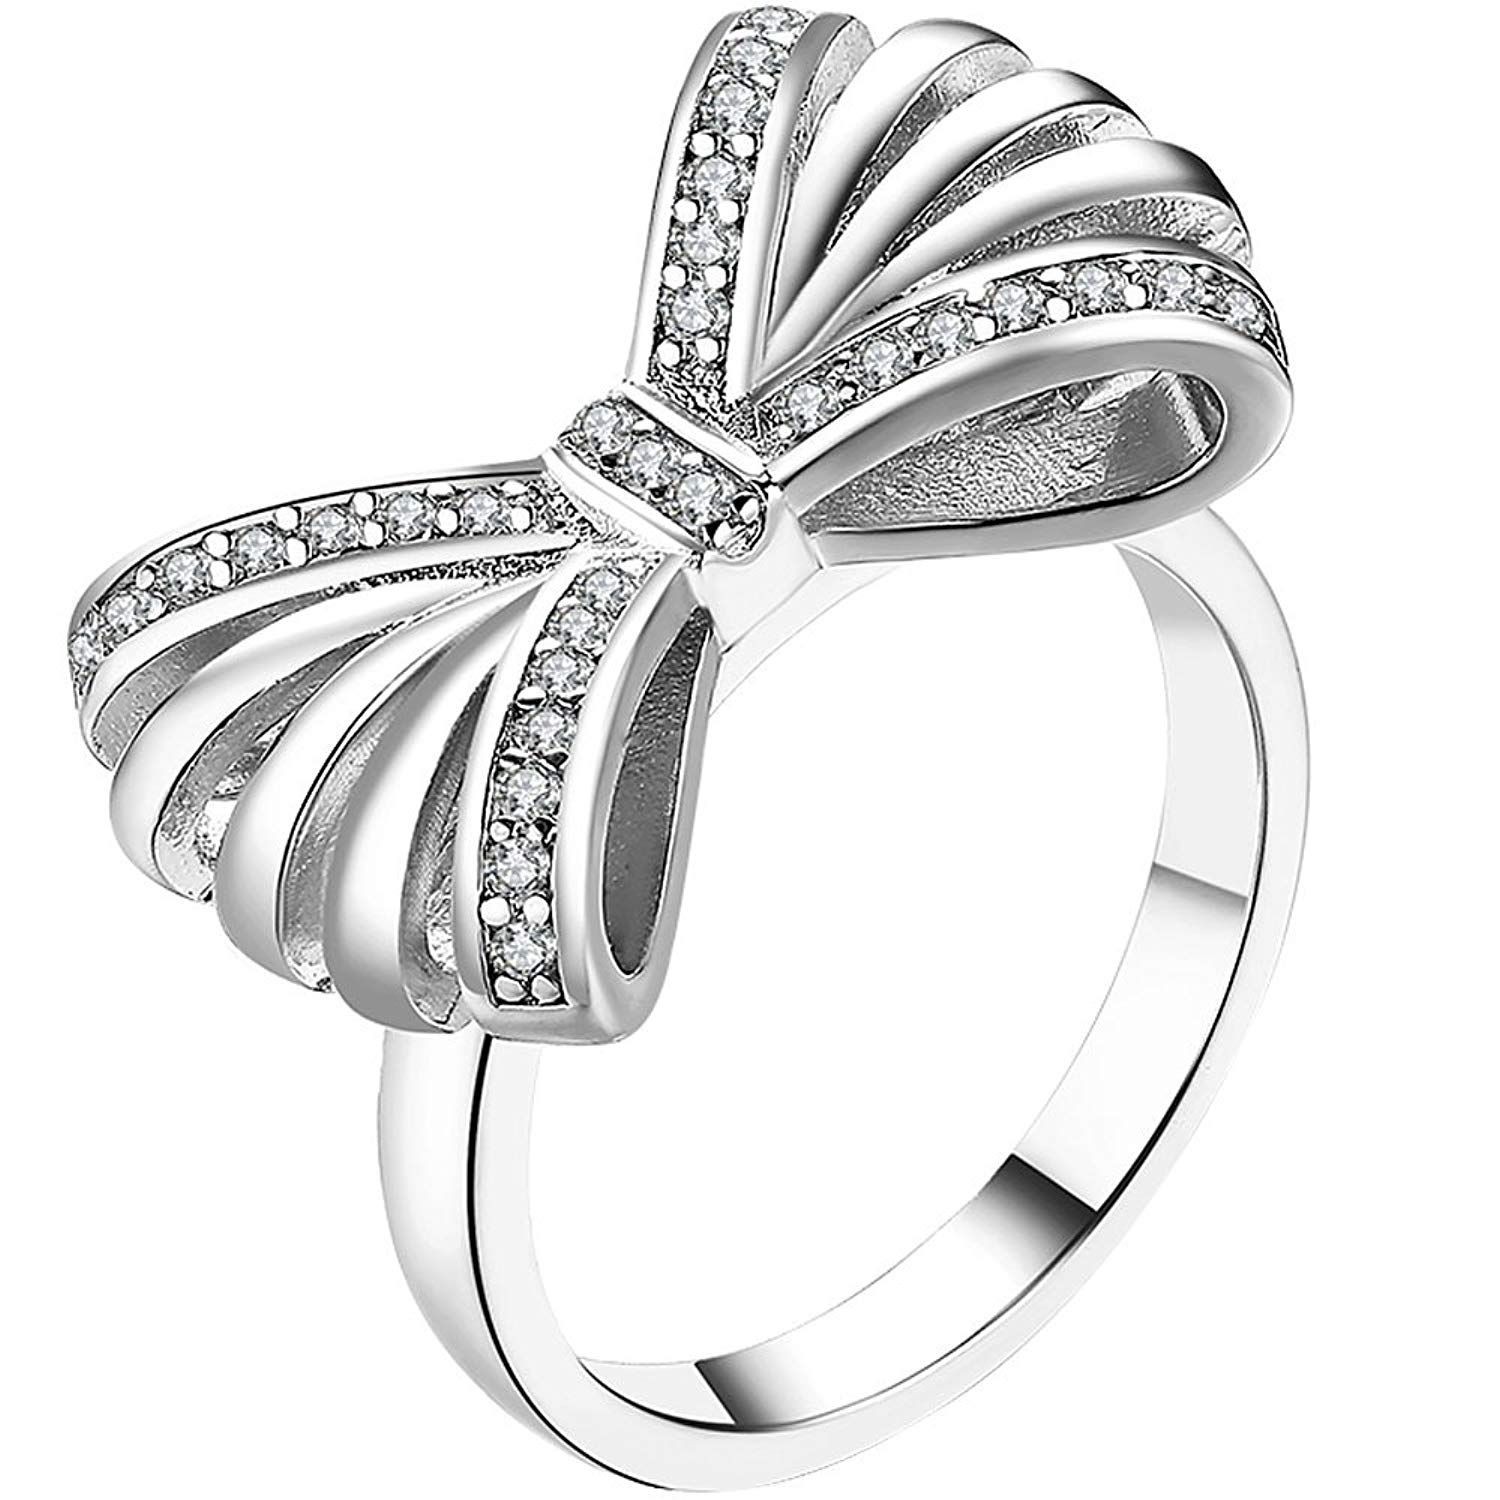 LWLH Jewelry Womens 18K White Gold Plated Cubic Zirconia